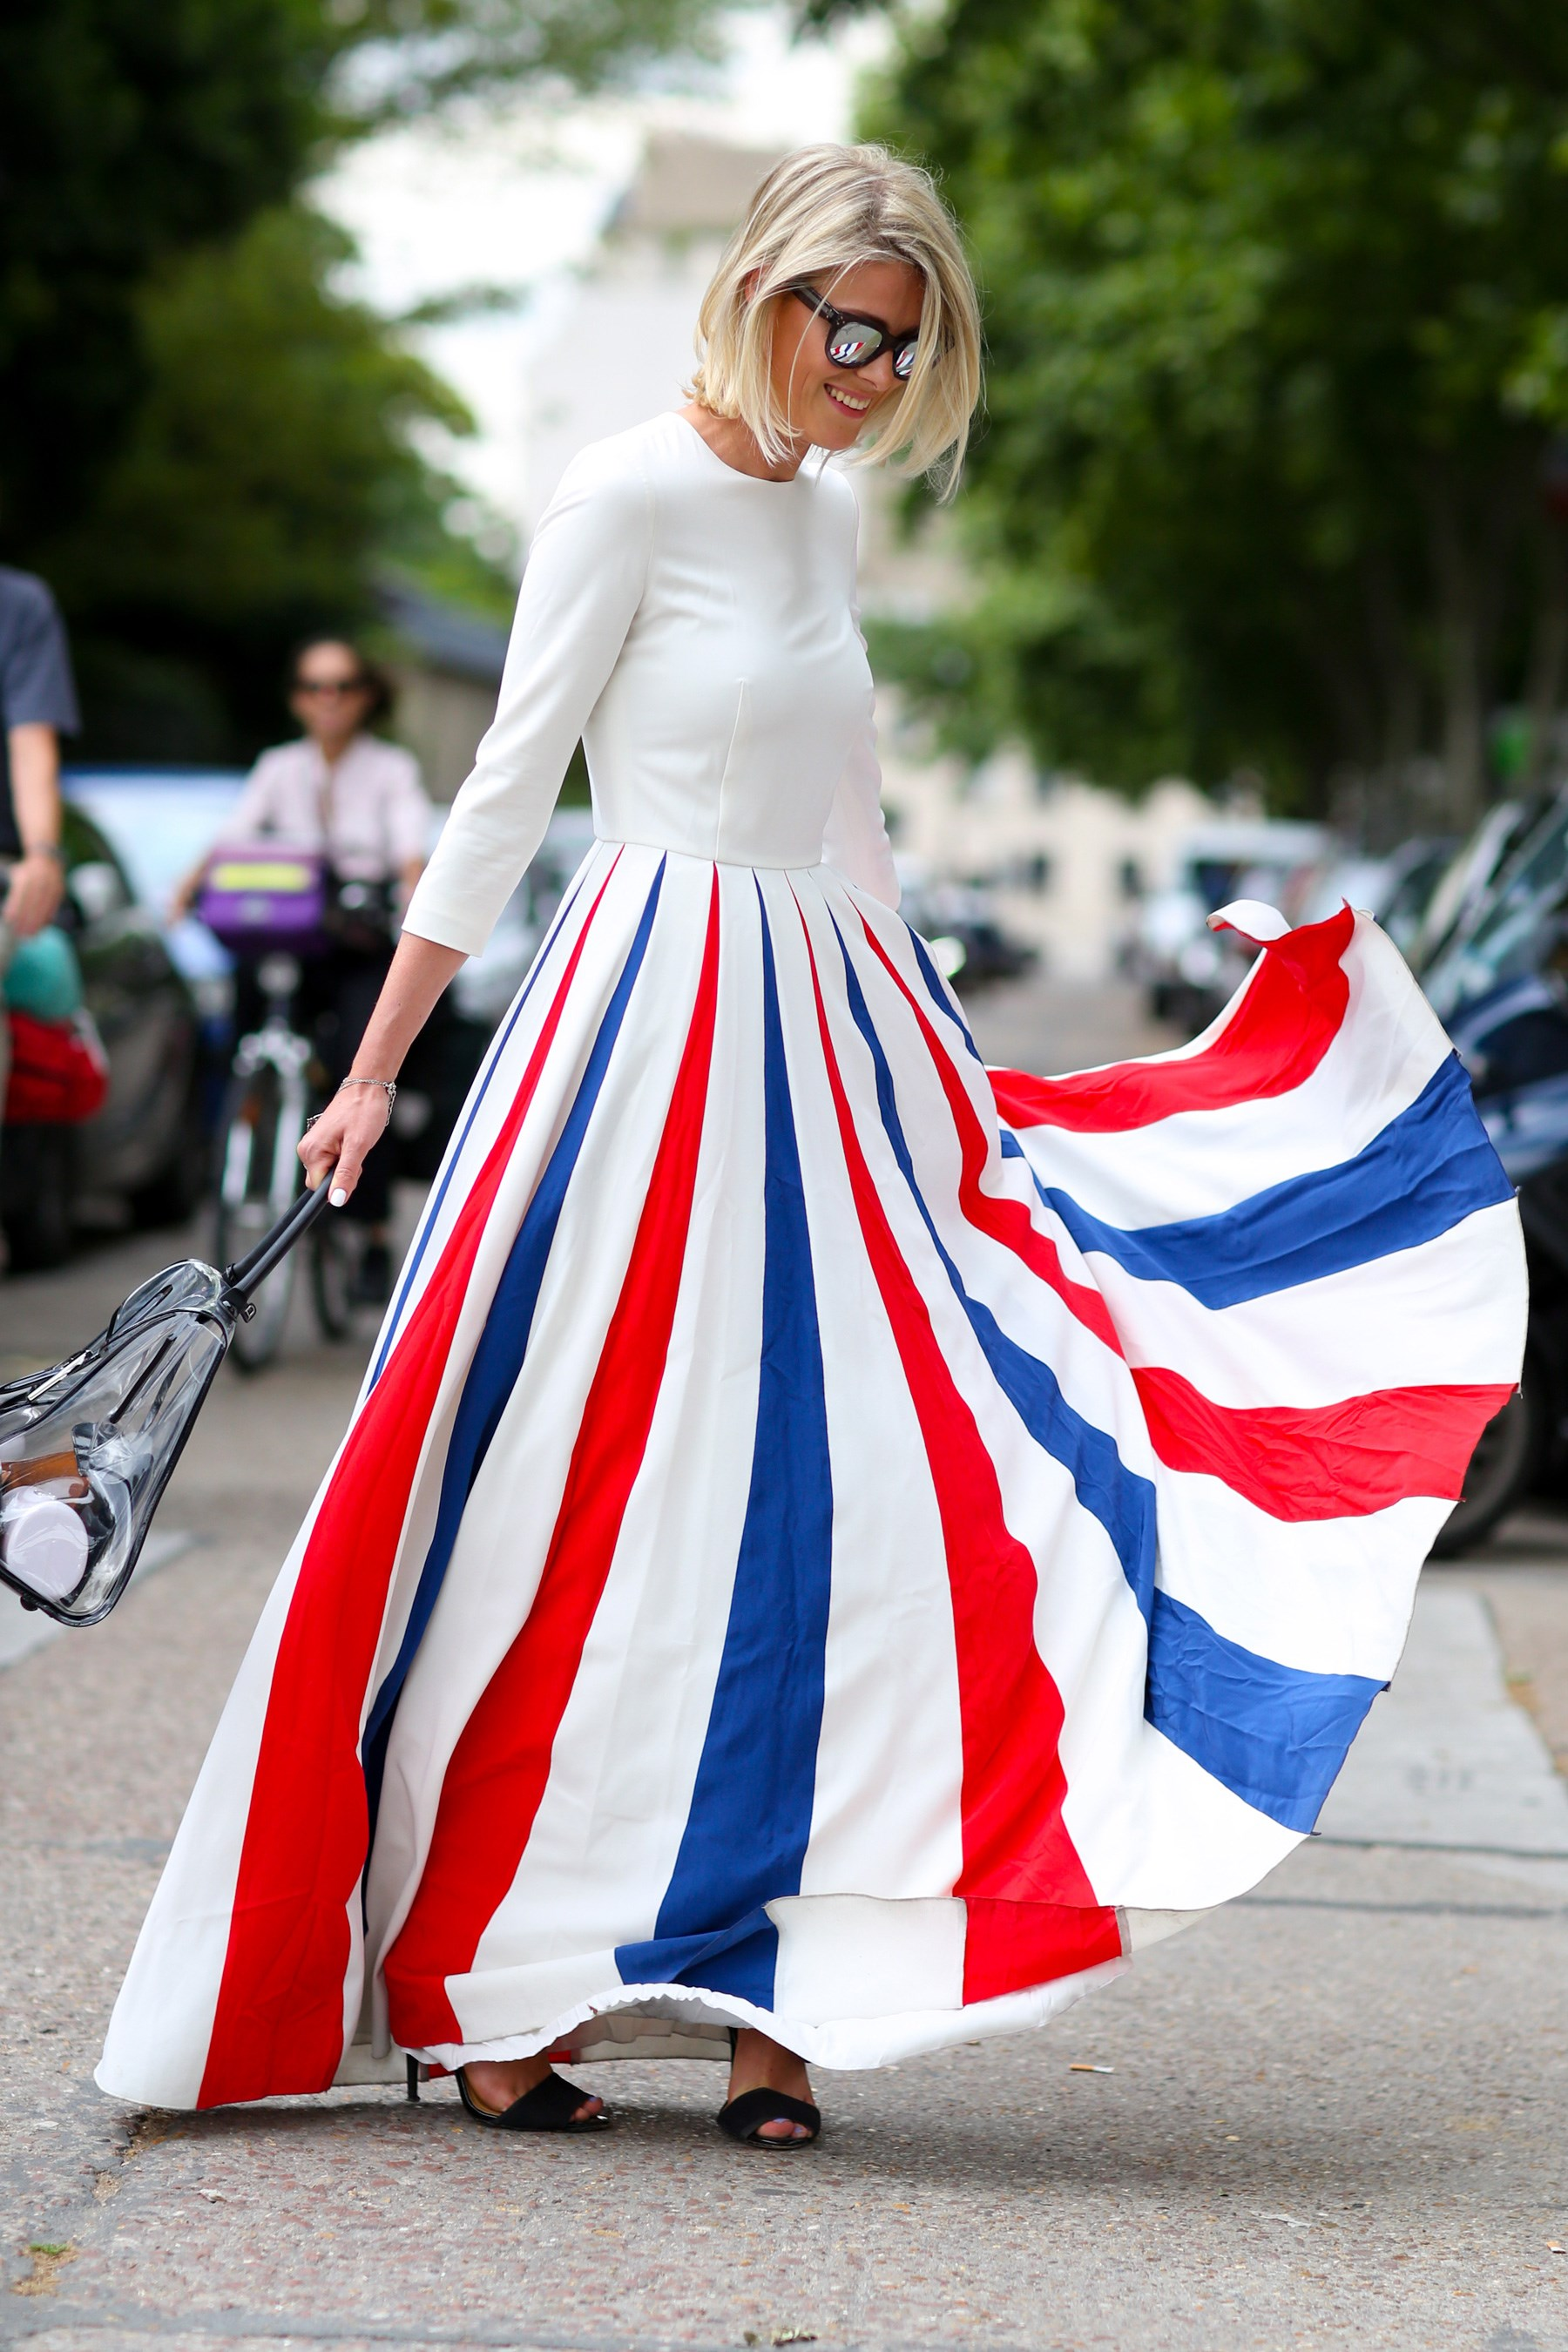 The ultimate 4th of July carnival dress swirled it's way around the couture shows.